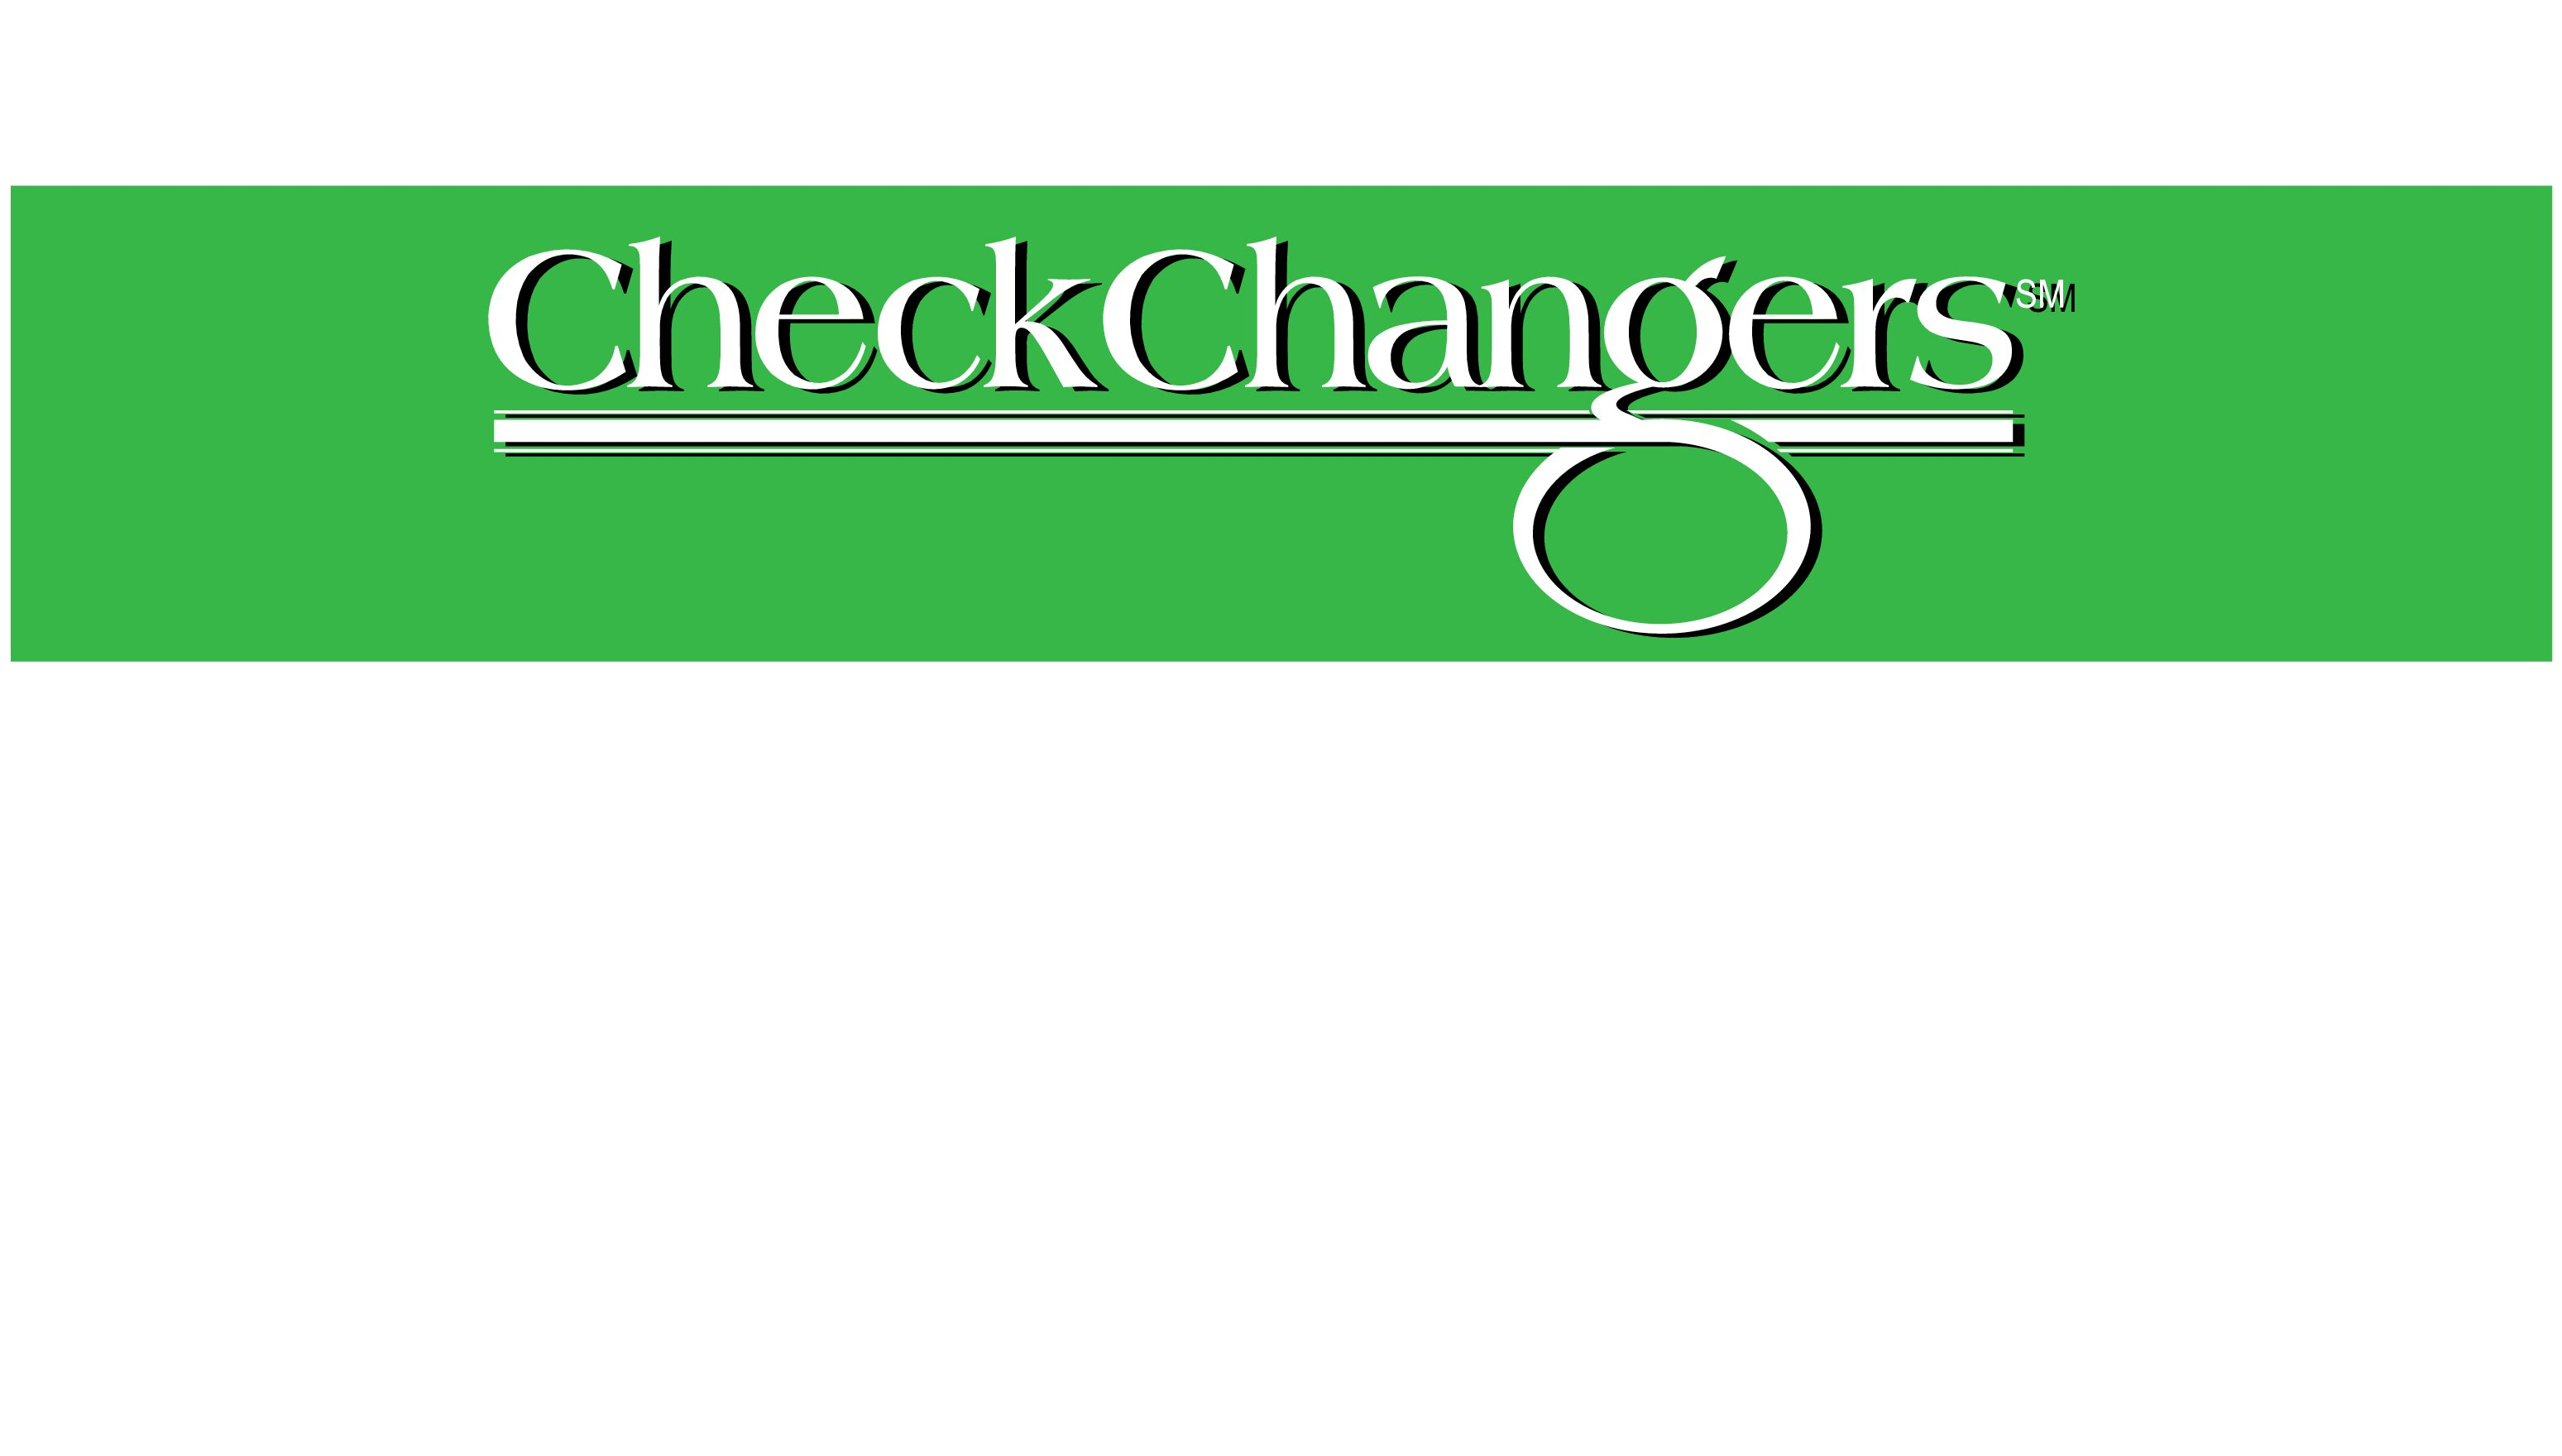 Check Changers